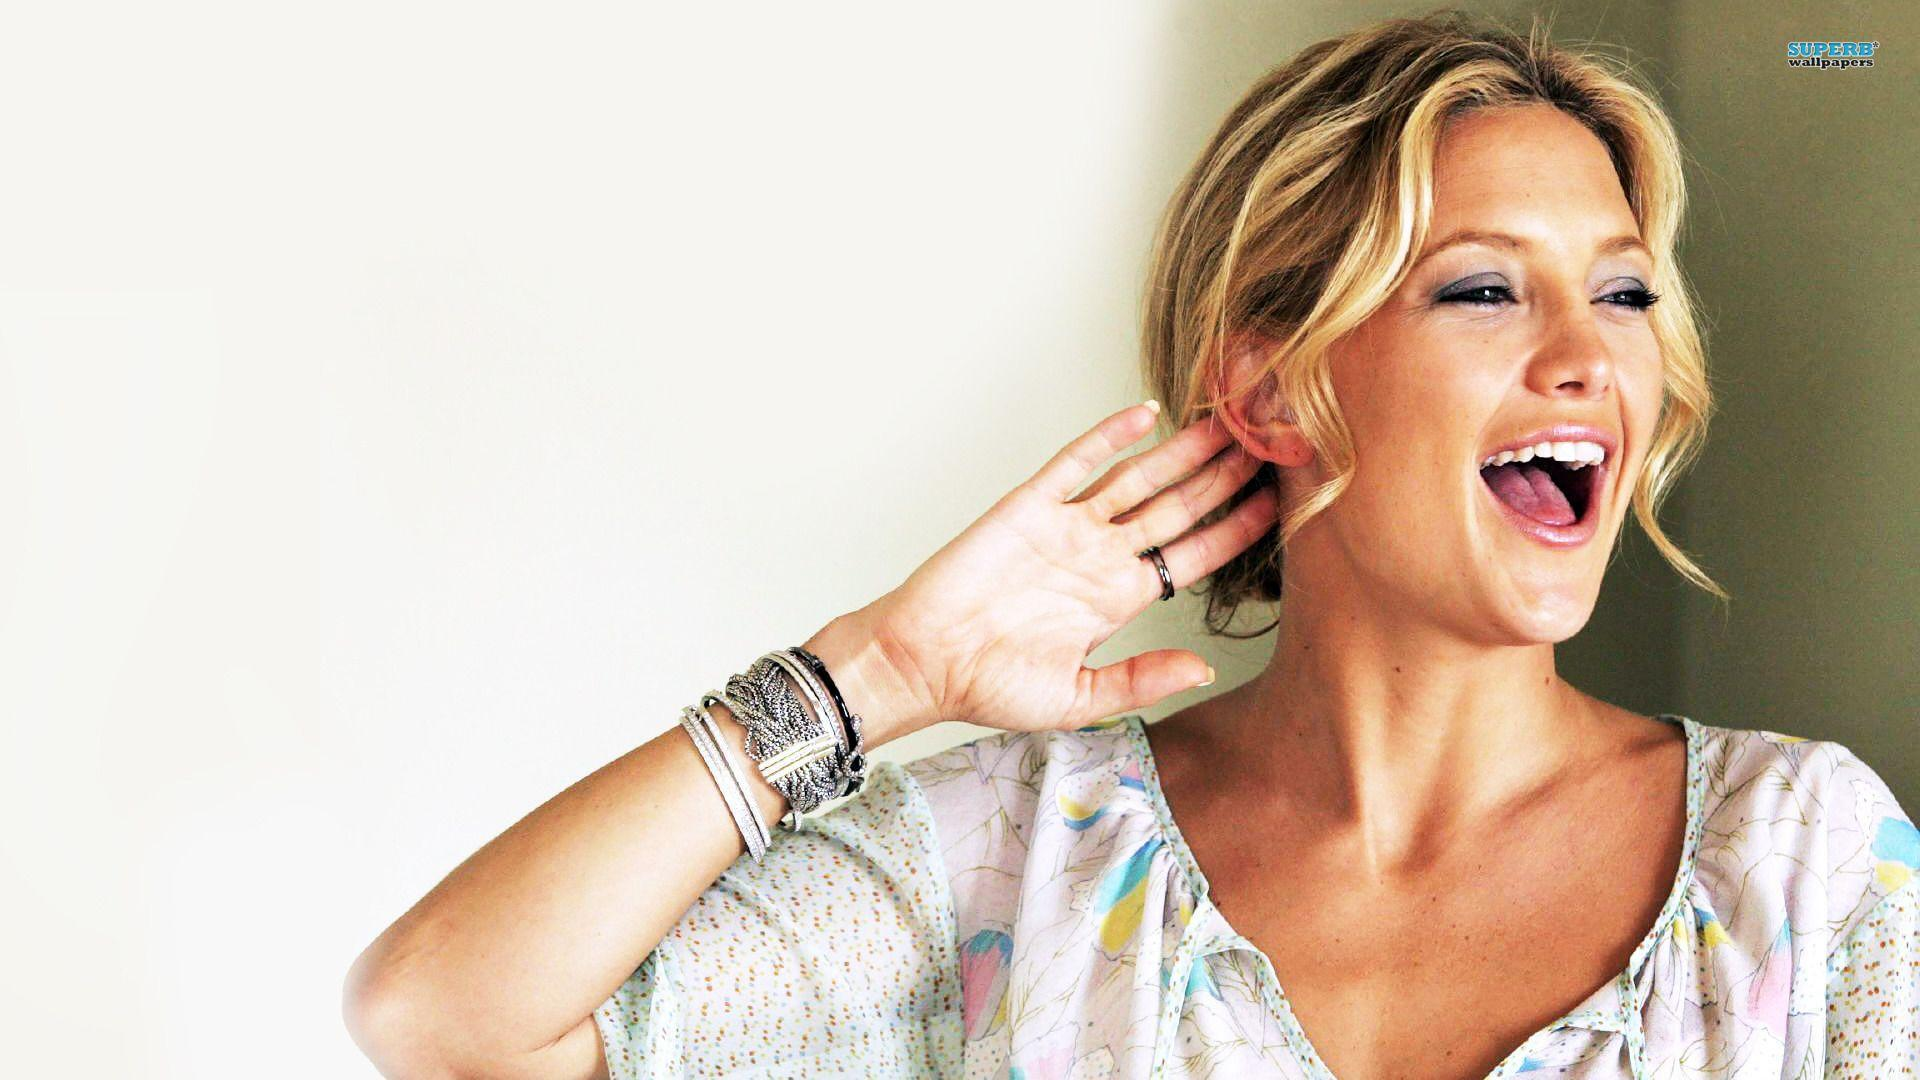 Kate Hudson 1080p Exclusive HD Wallpapers